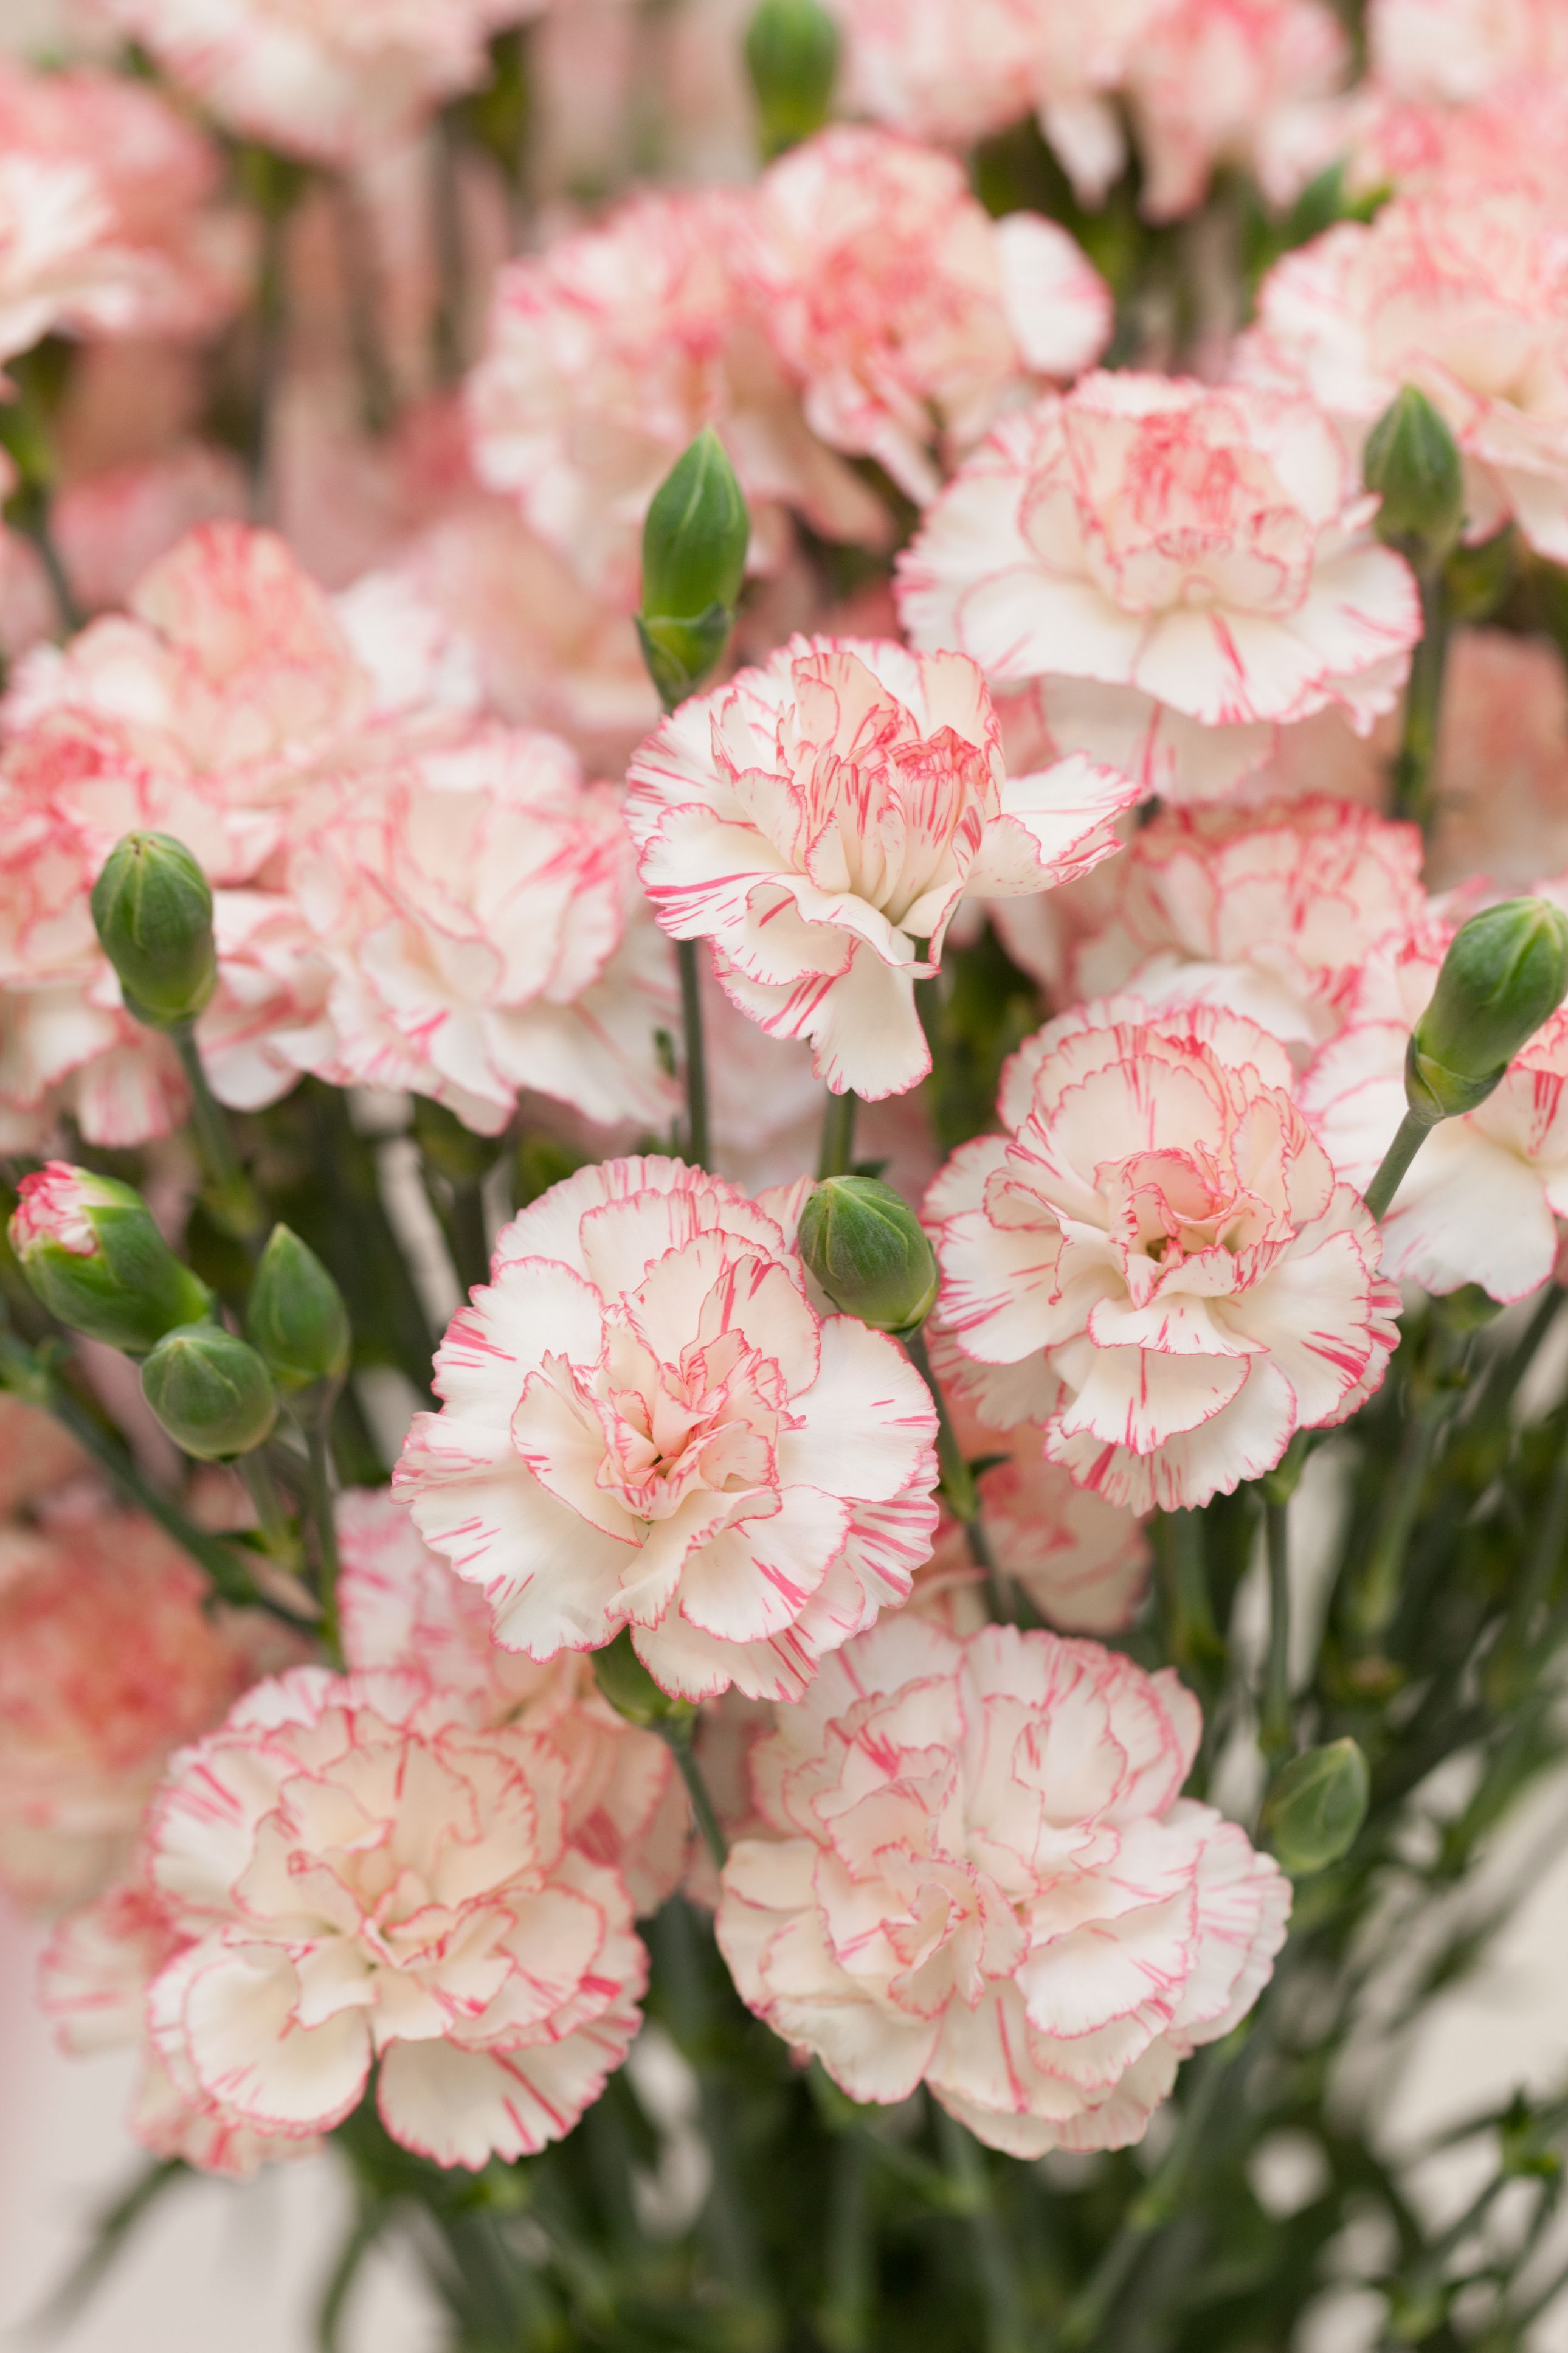 The Carnation Is The National Flower Of Spain Monaco And Colombia But Bogota Colombia Is Known For Carnation Flower Carnation Plants Most Beautiful Flowers